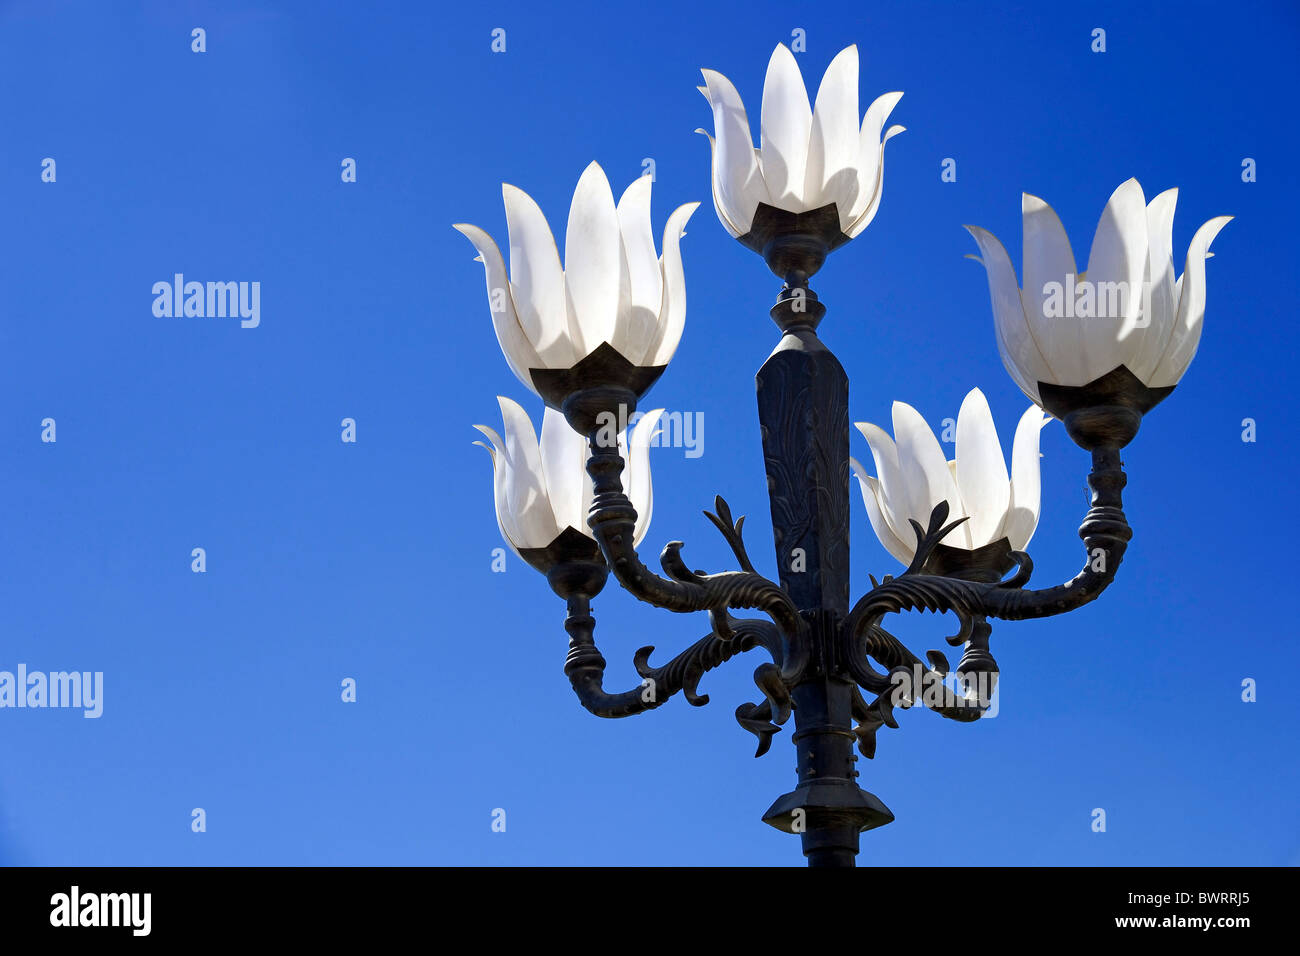 Streetlight in a tourist resort, Sharm el Sheikh, Egypt, Africa - Stock Image